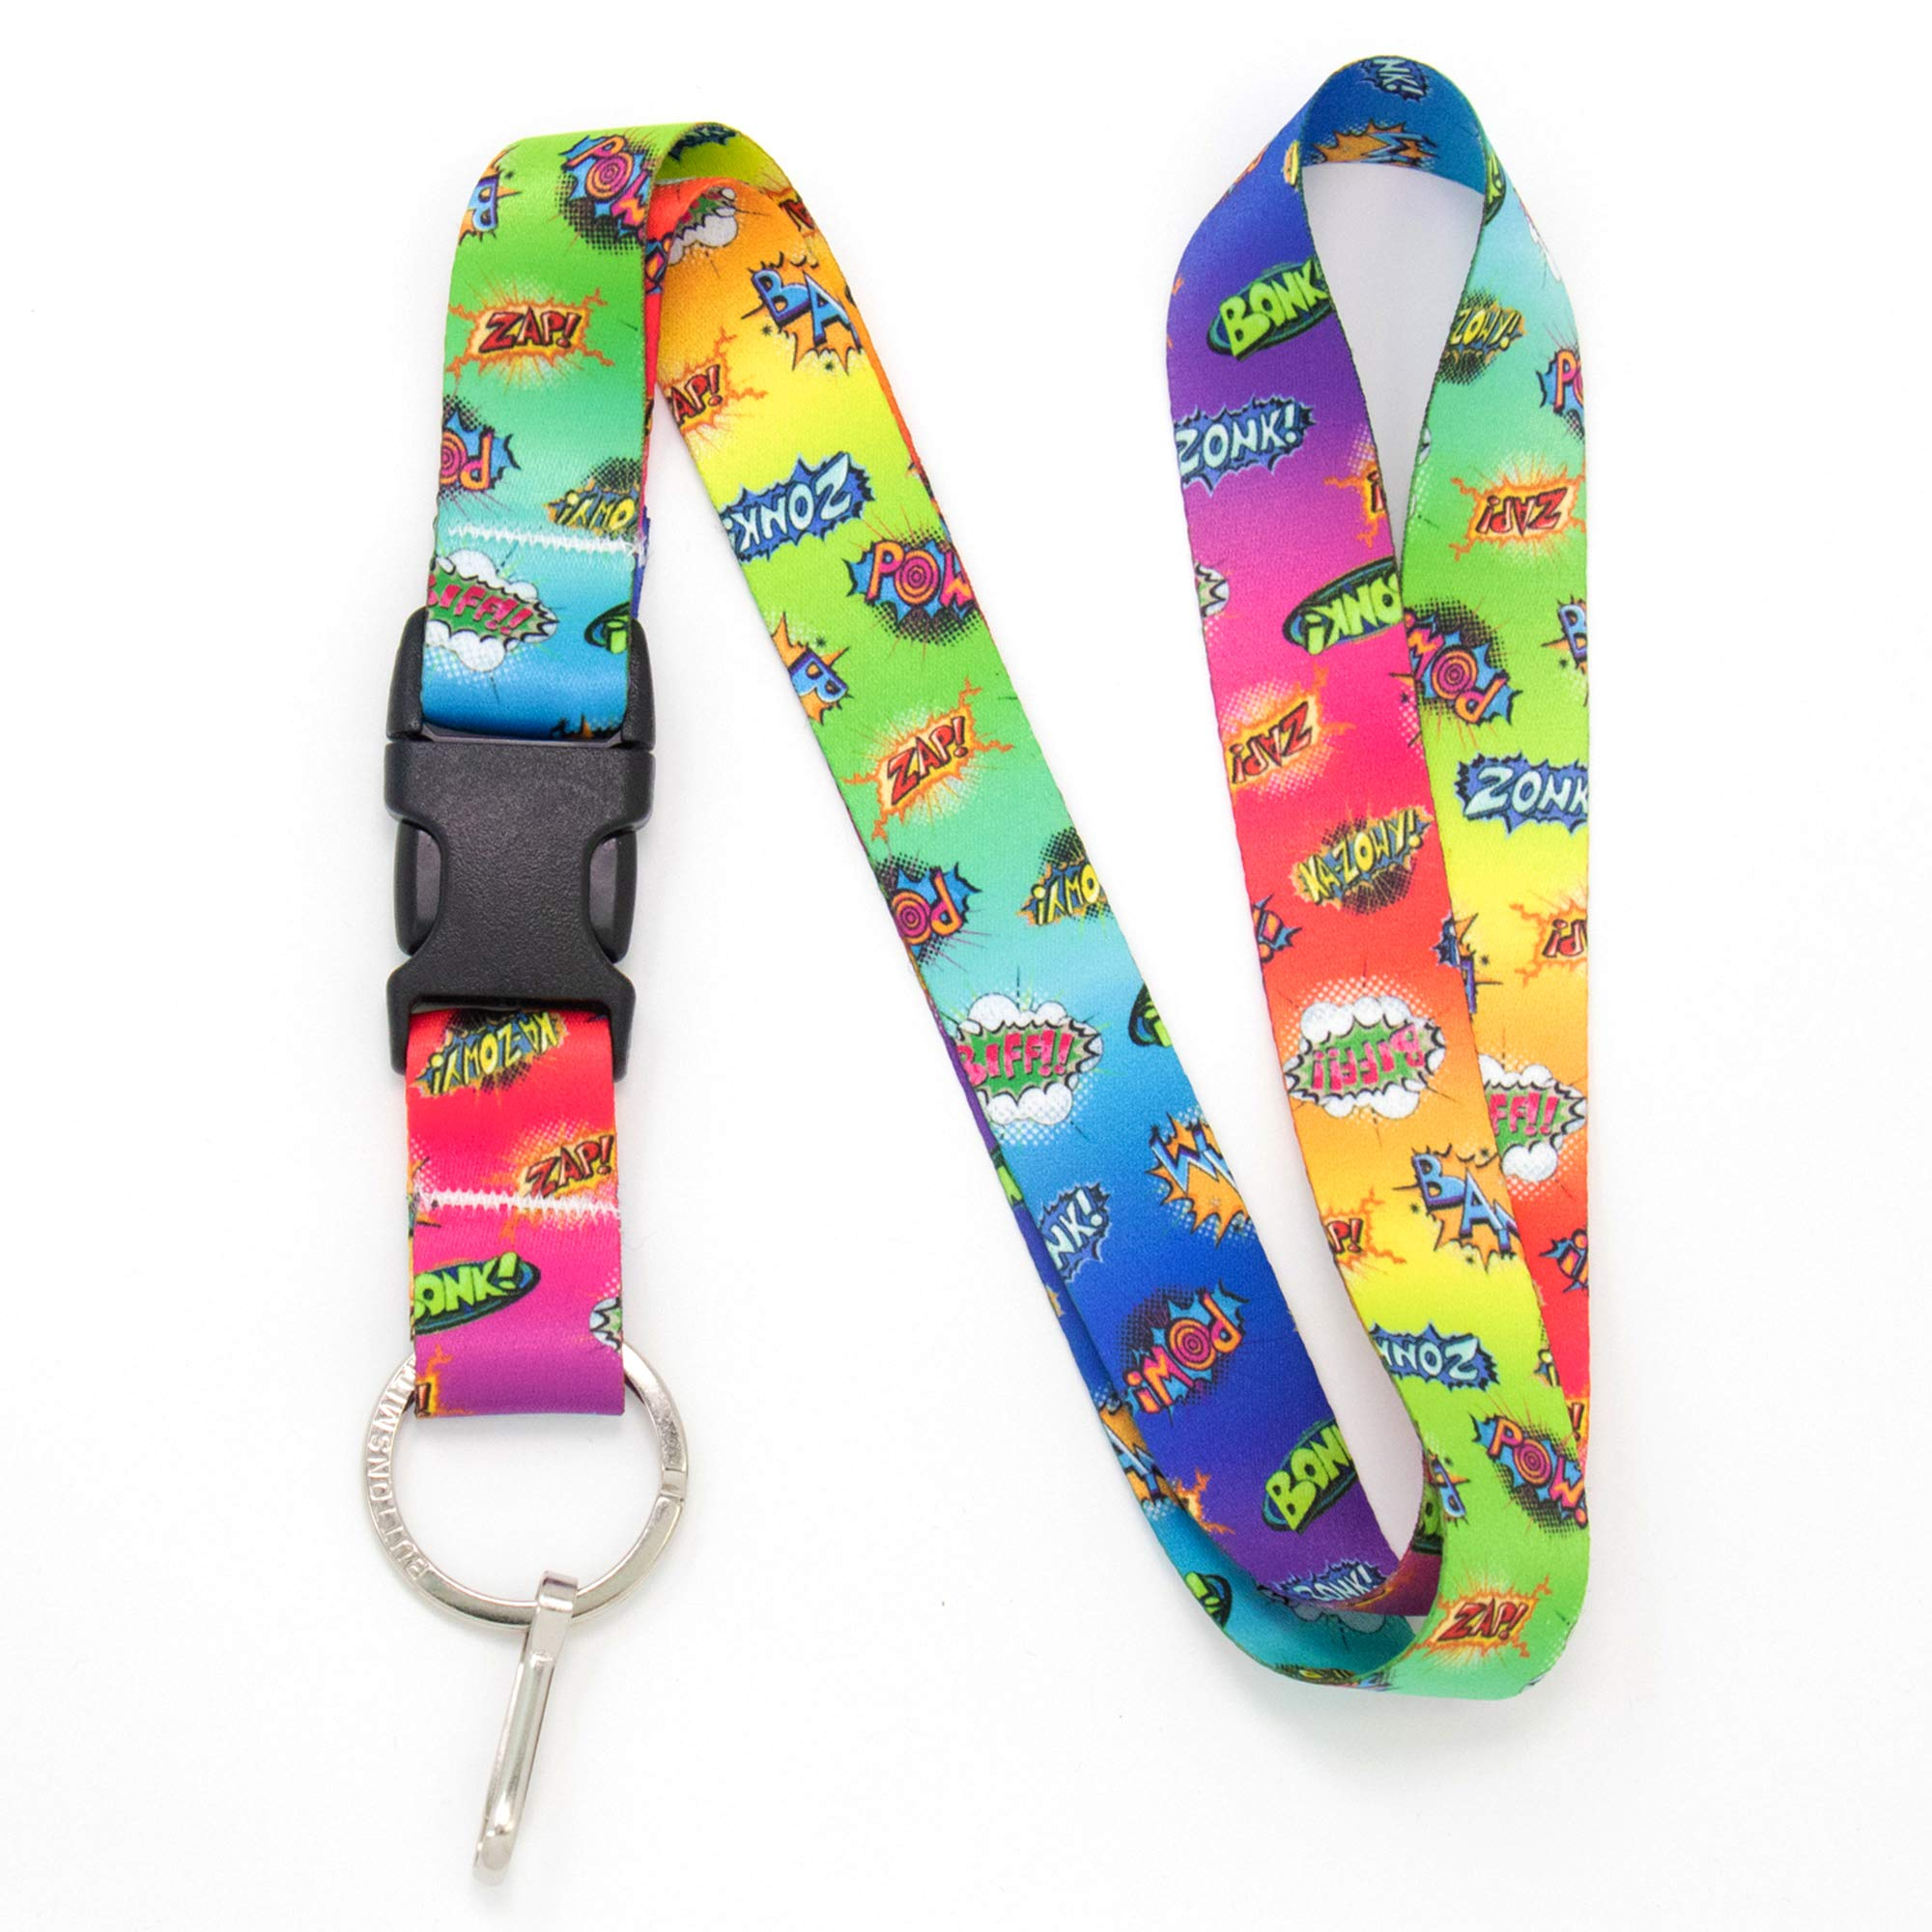 Buttonsmith Comix Premium Lanyard - with Buckle and Flat Ring - Made in The USA